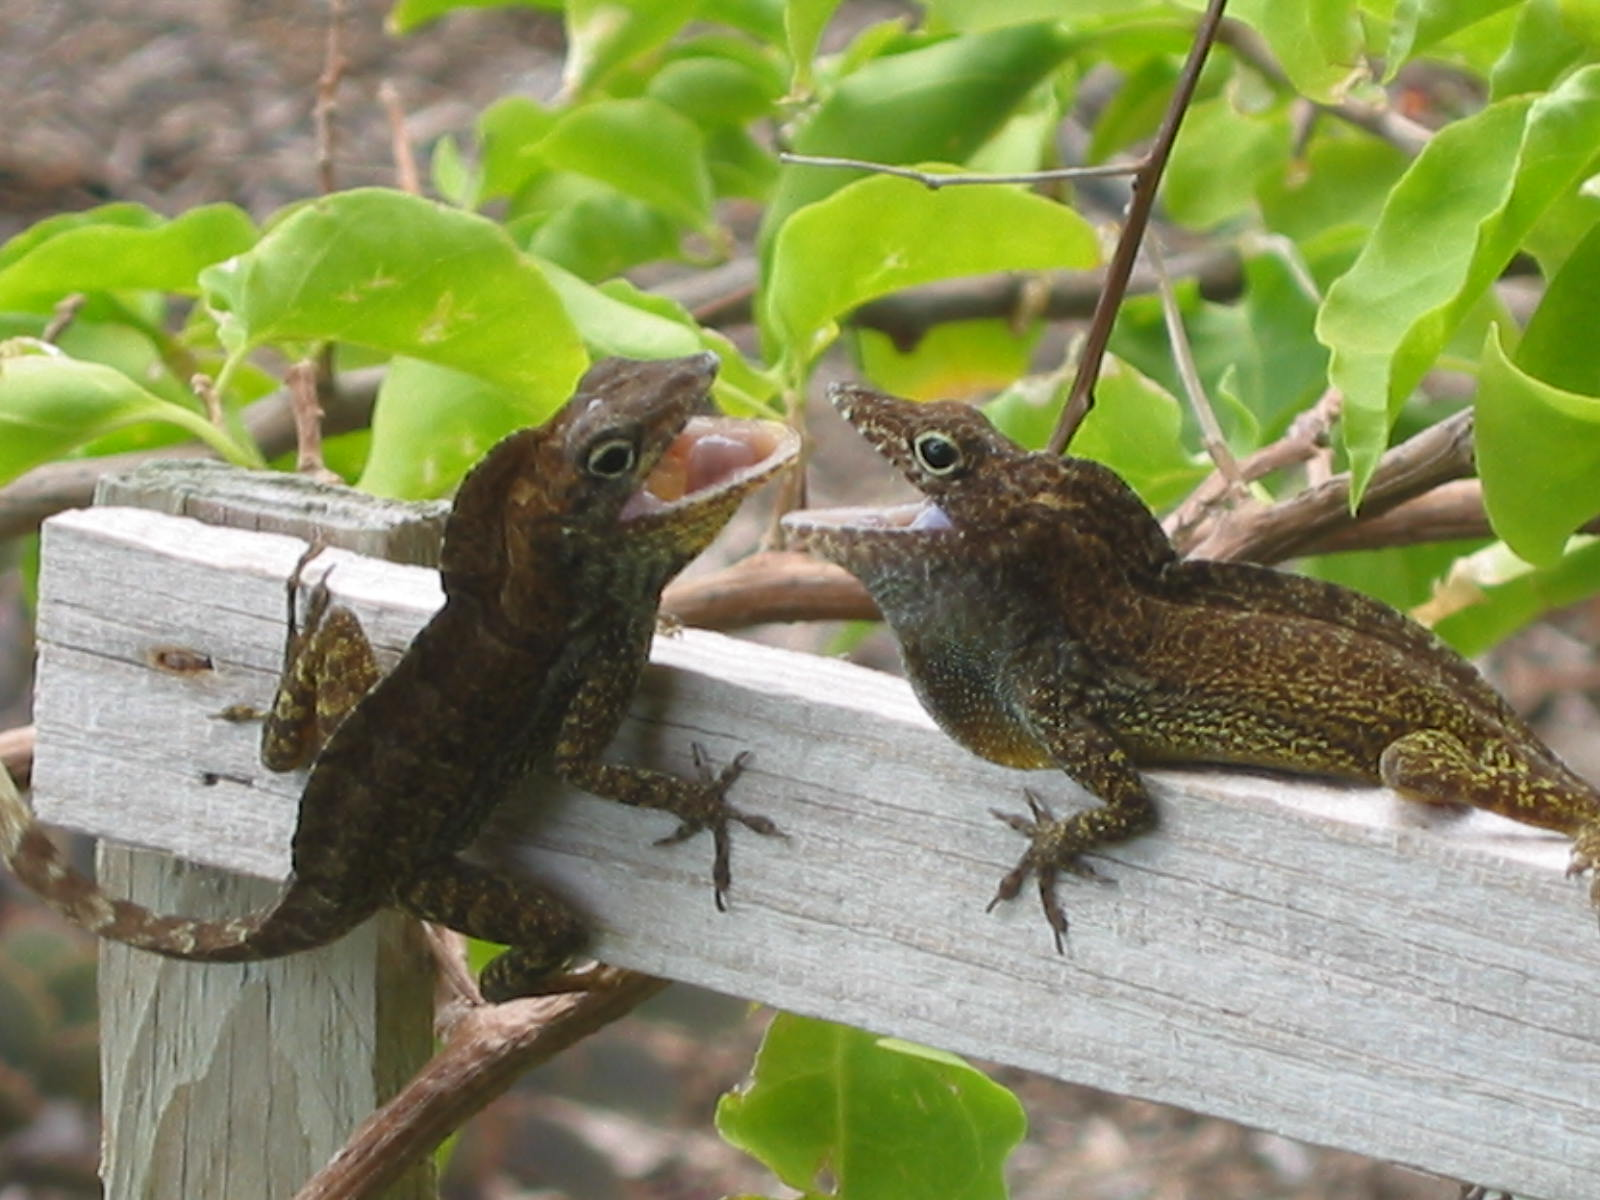 Dueling lizards at Grand Turk Museum were quite a spectacle.